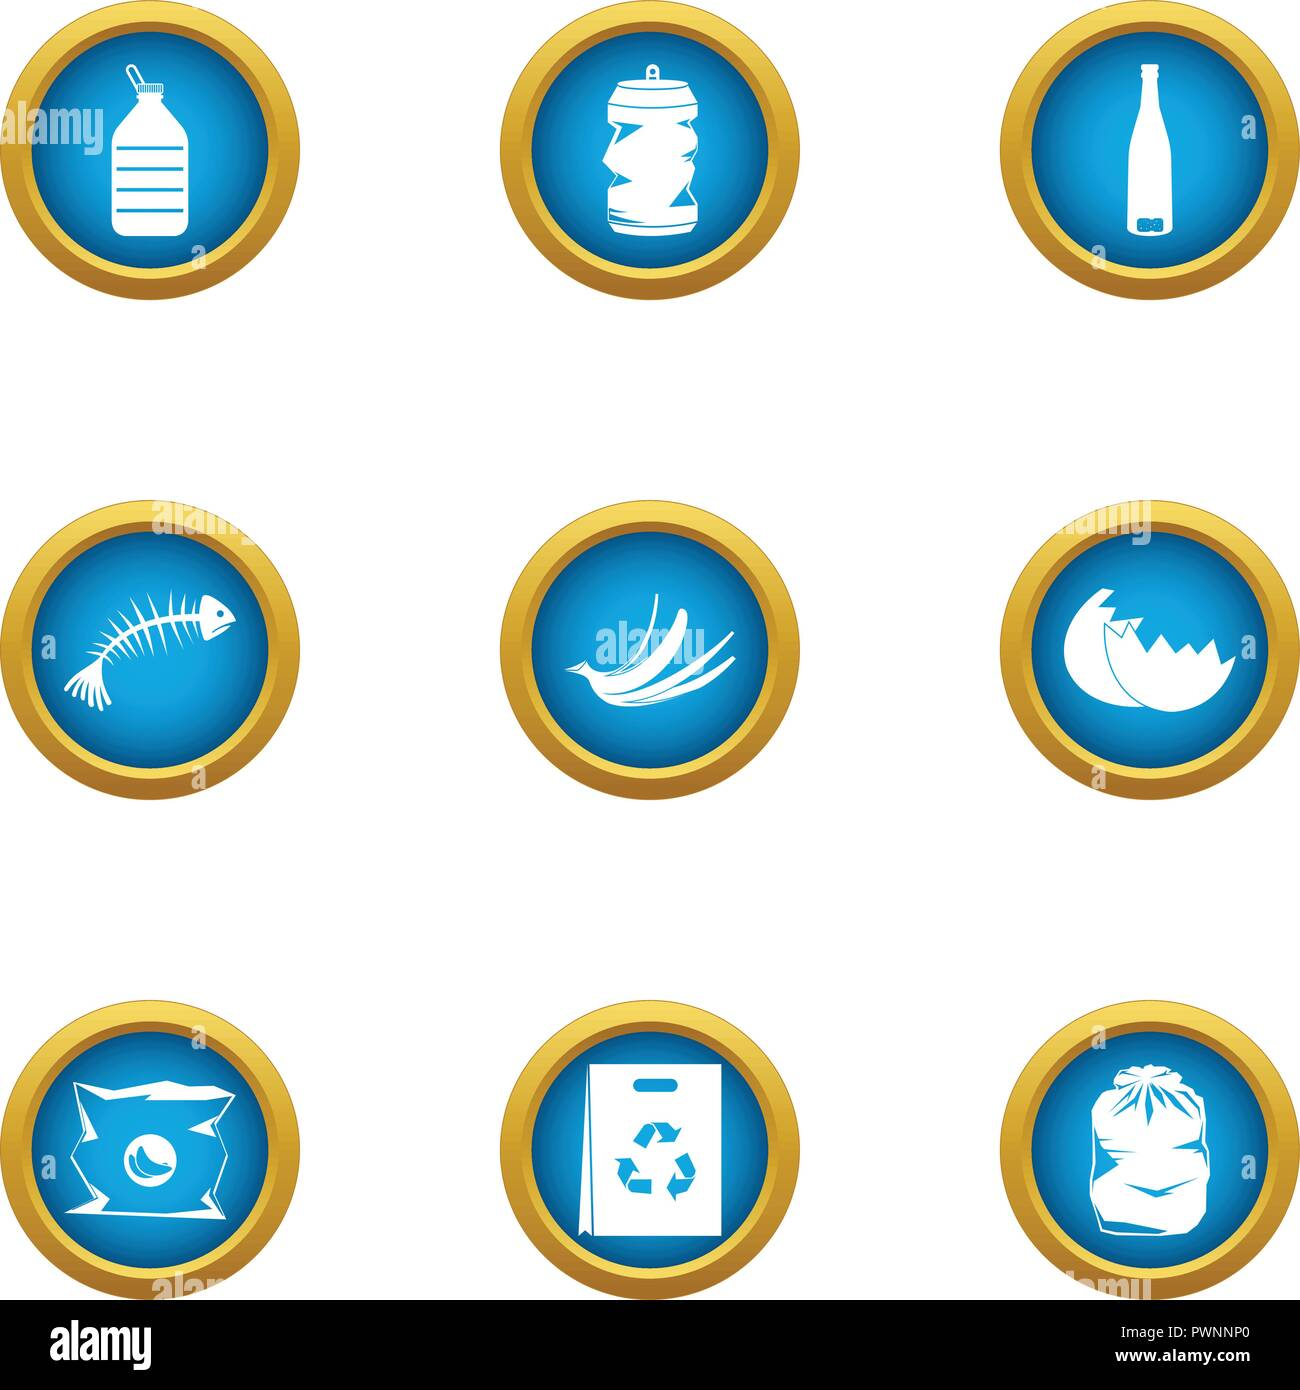 Production garbage icons set, flat style - Stock Vector